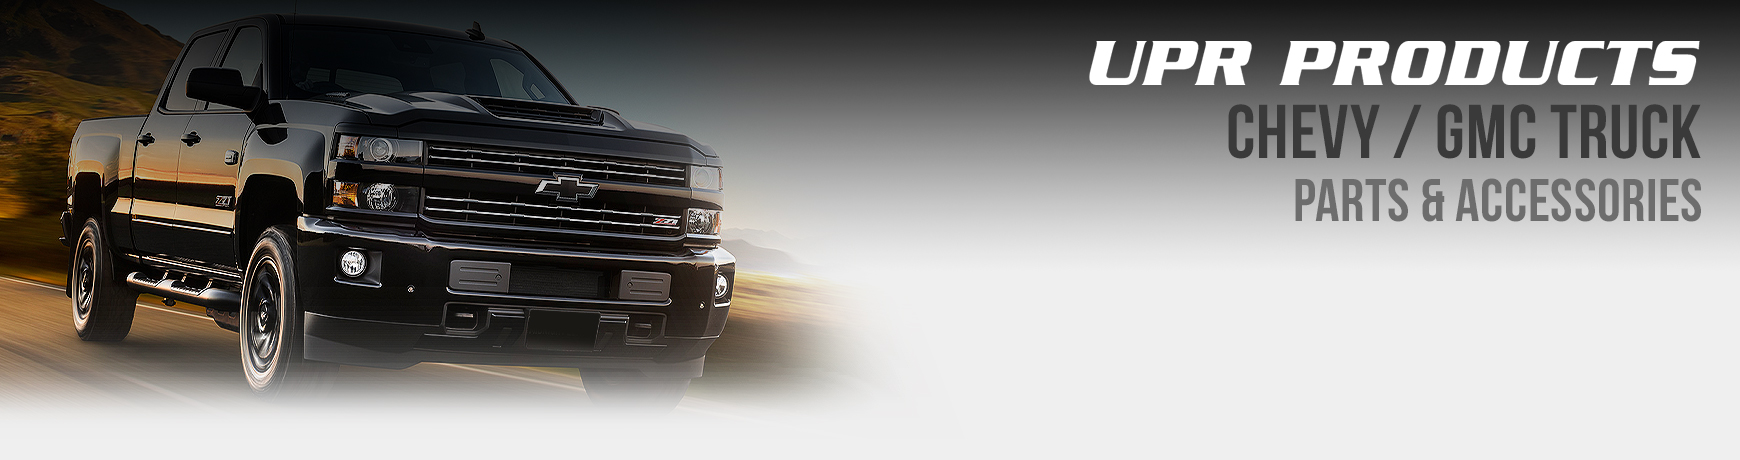 chevy-gmc-truck-parts-accessories.jpg